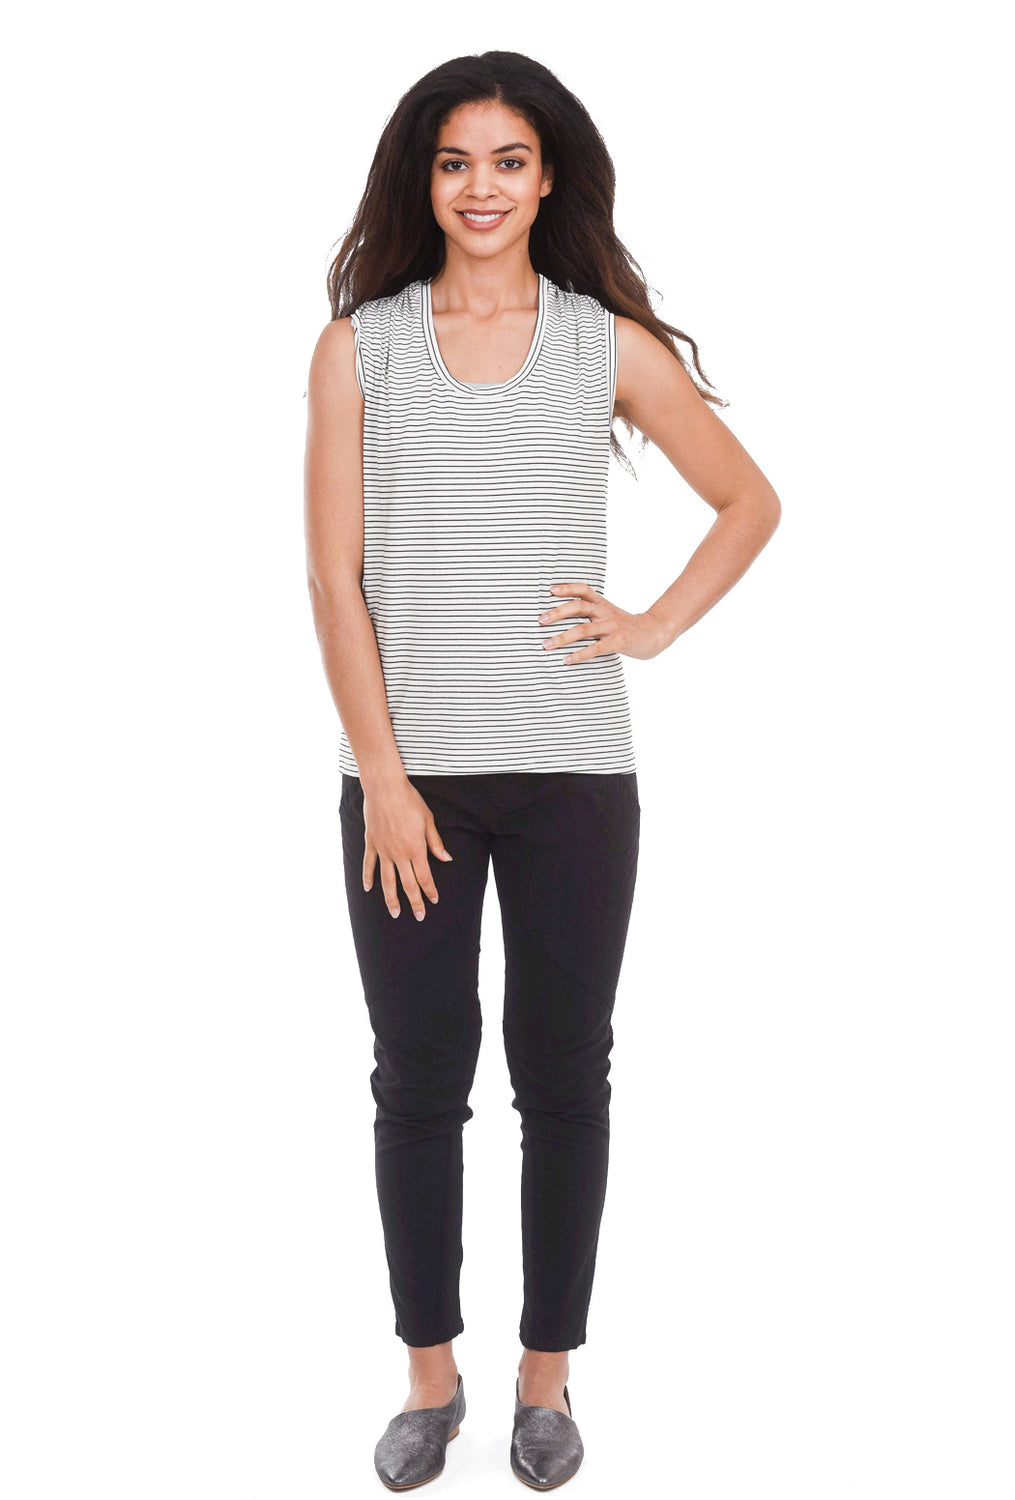 Sarah Liller Chloe T-Shirt, Cloud Stripe